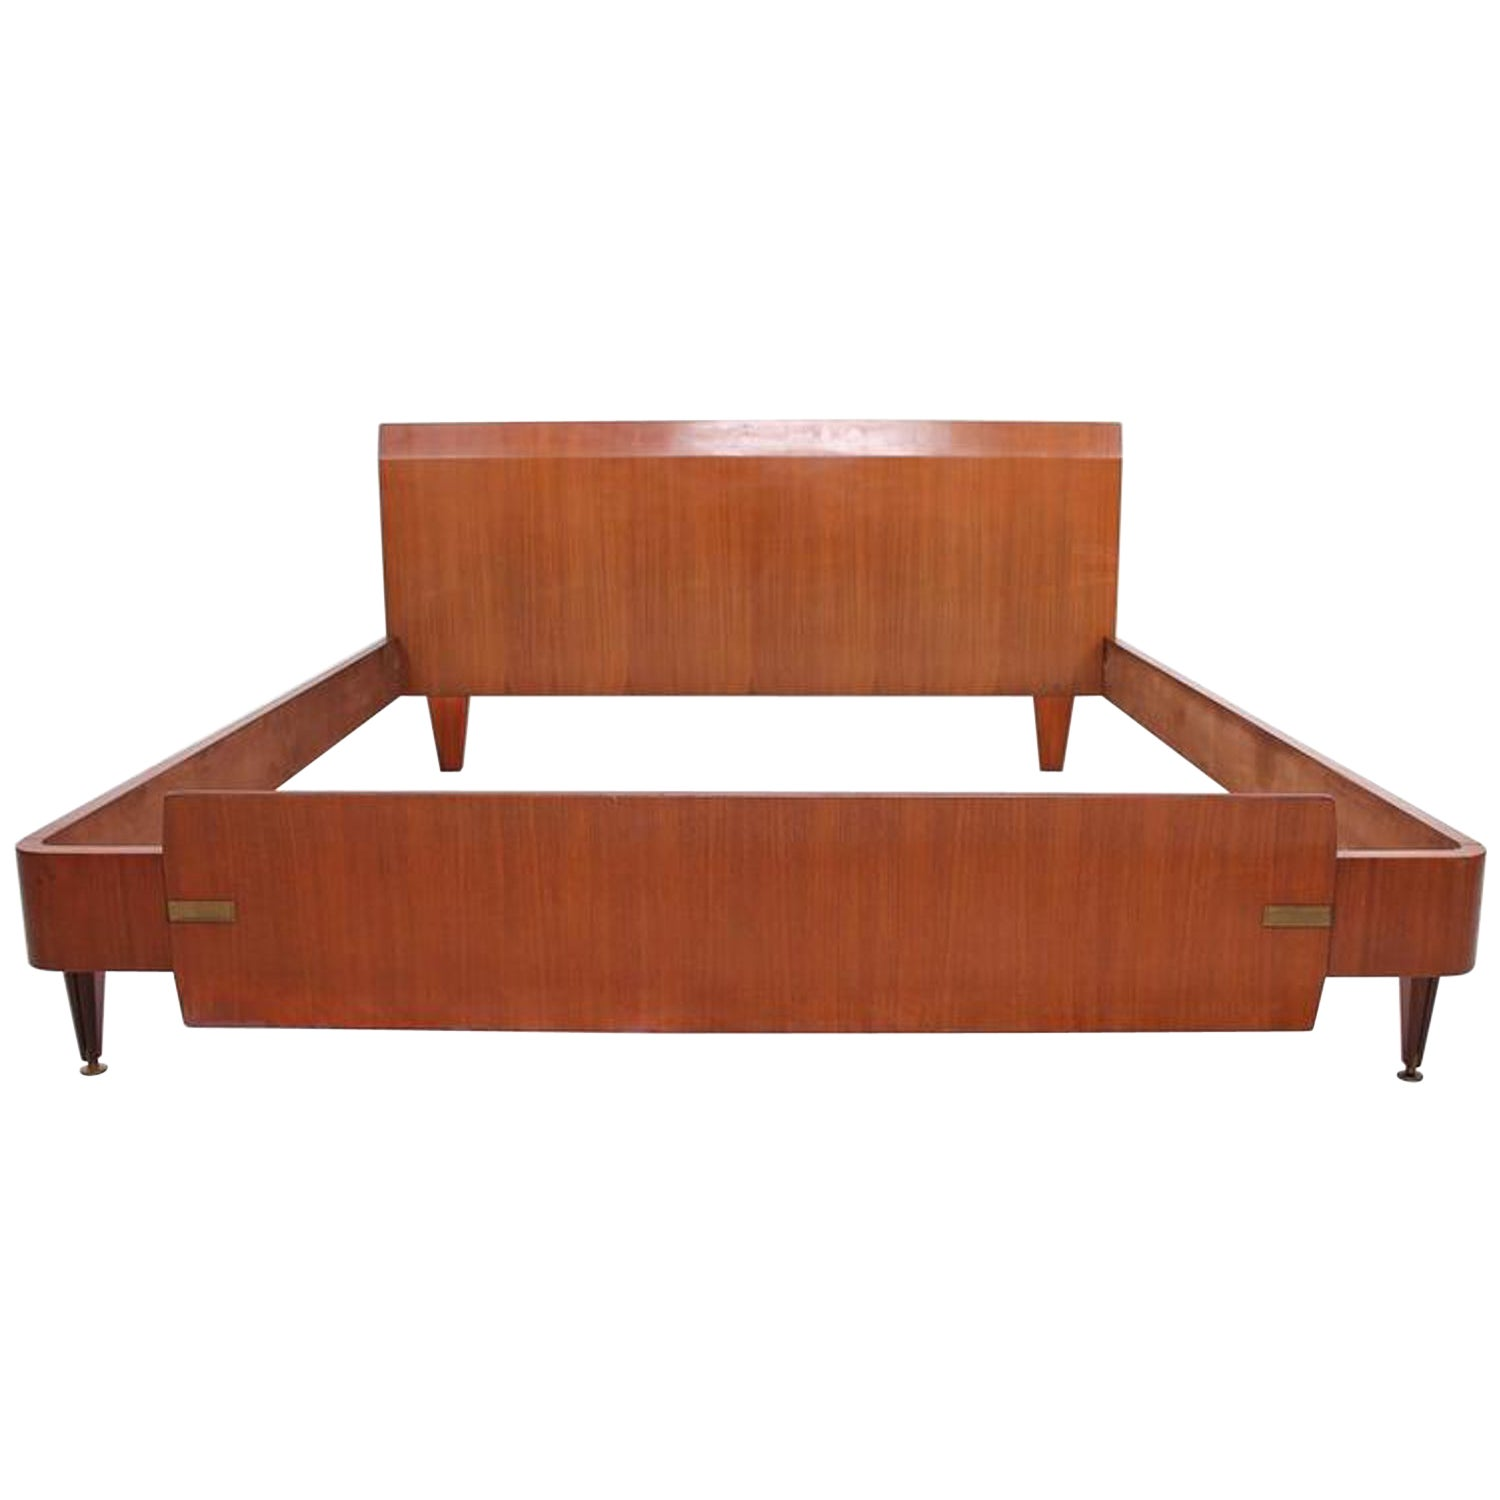 Dassi Mid-Century Modern Italian Bed with Brass Detail 1960s after Gio Ponti